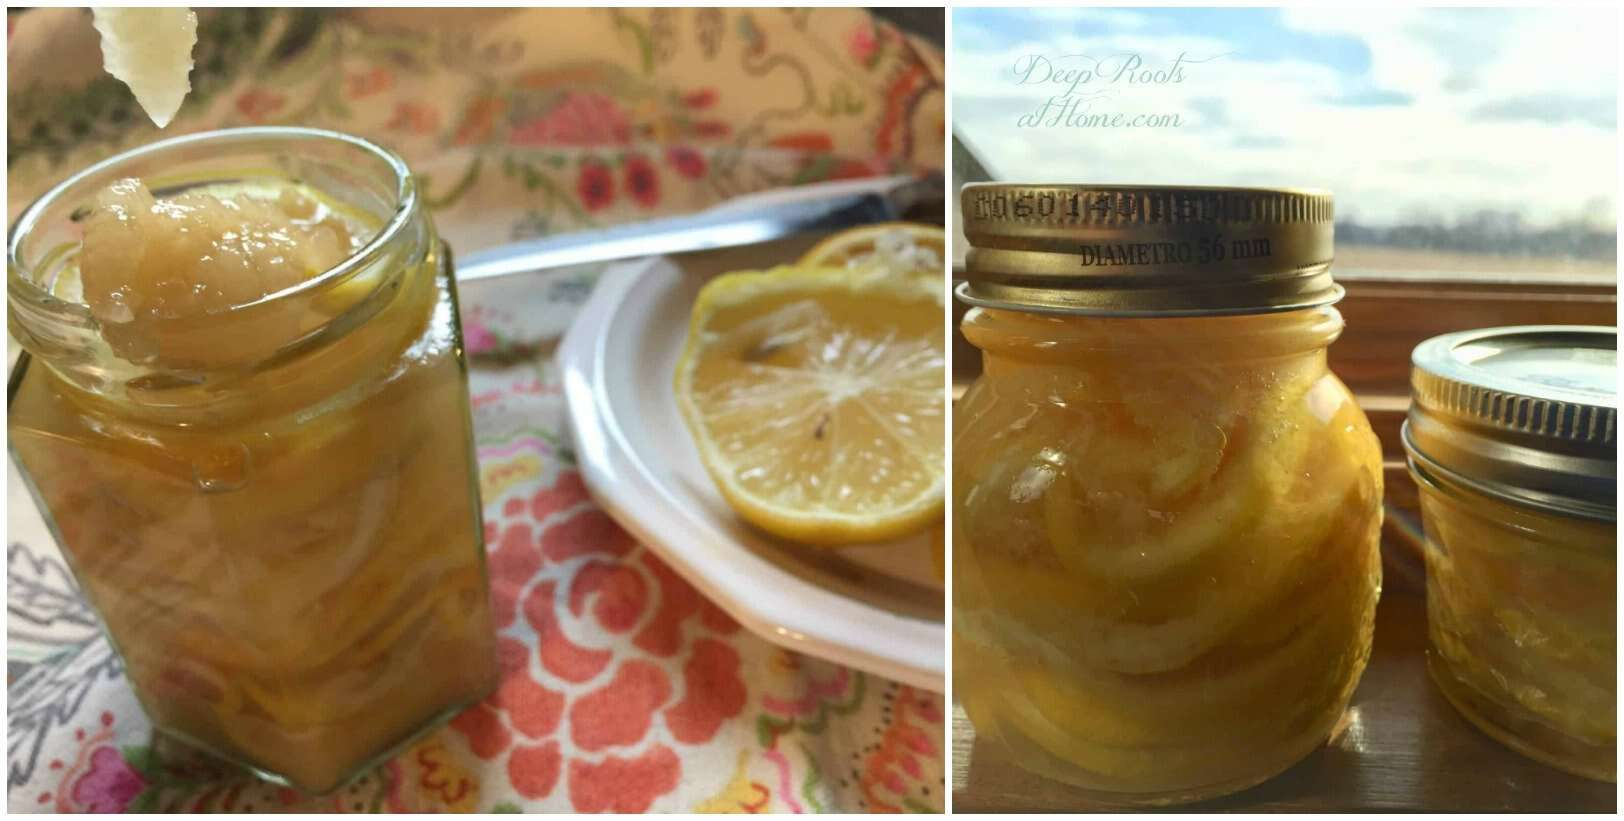 Making the infusion of honeyed lemons